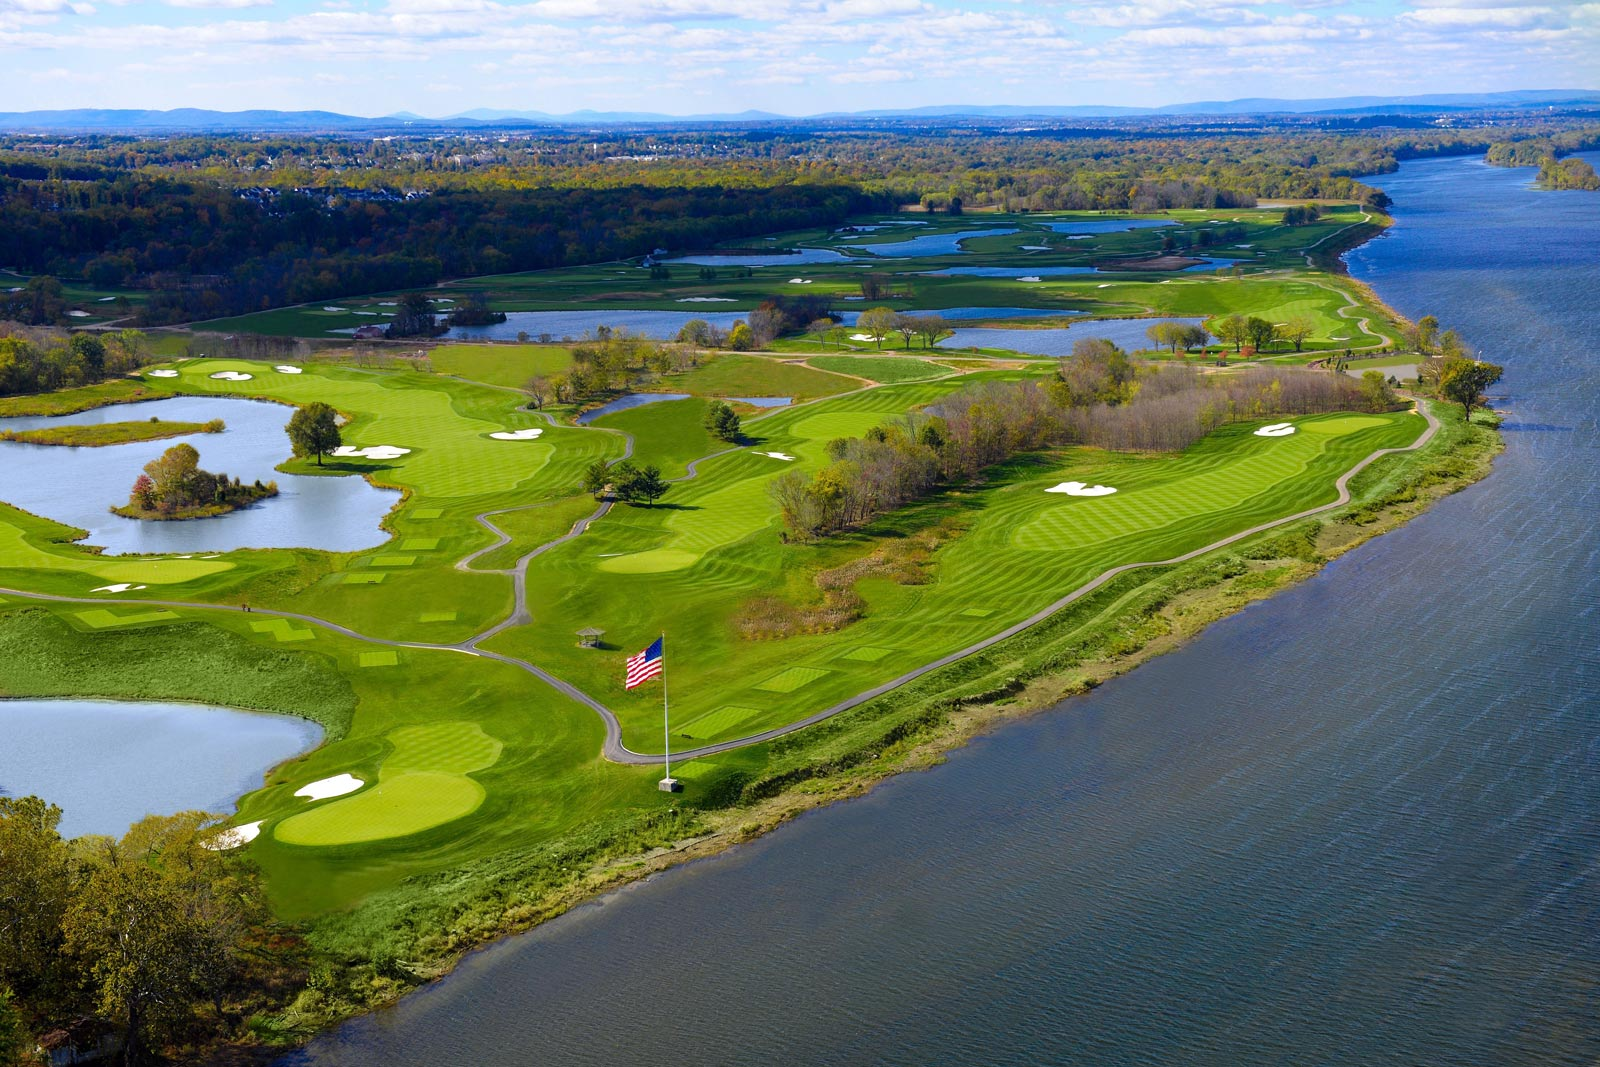 Trump's Washington, D.C.-area course, hard against the Potomac River, will play host to the 2017 Senior PGA Championship in May.